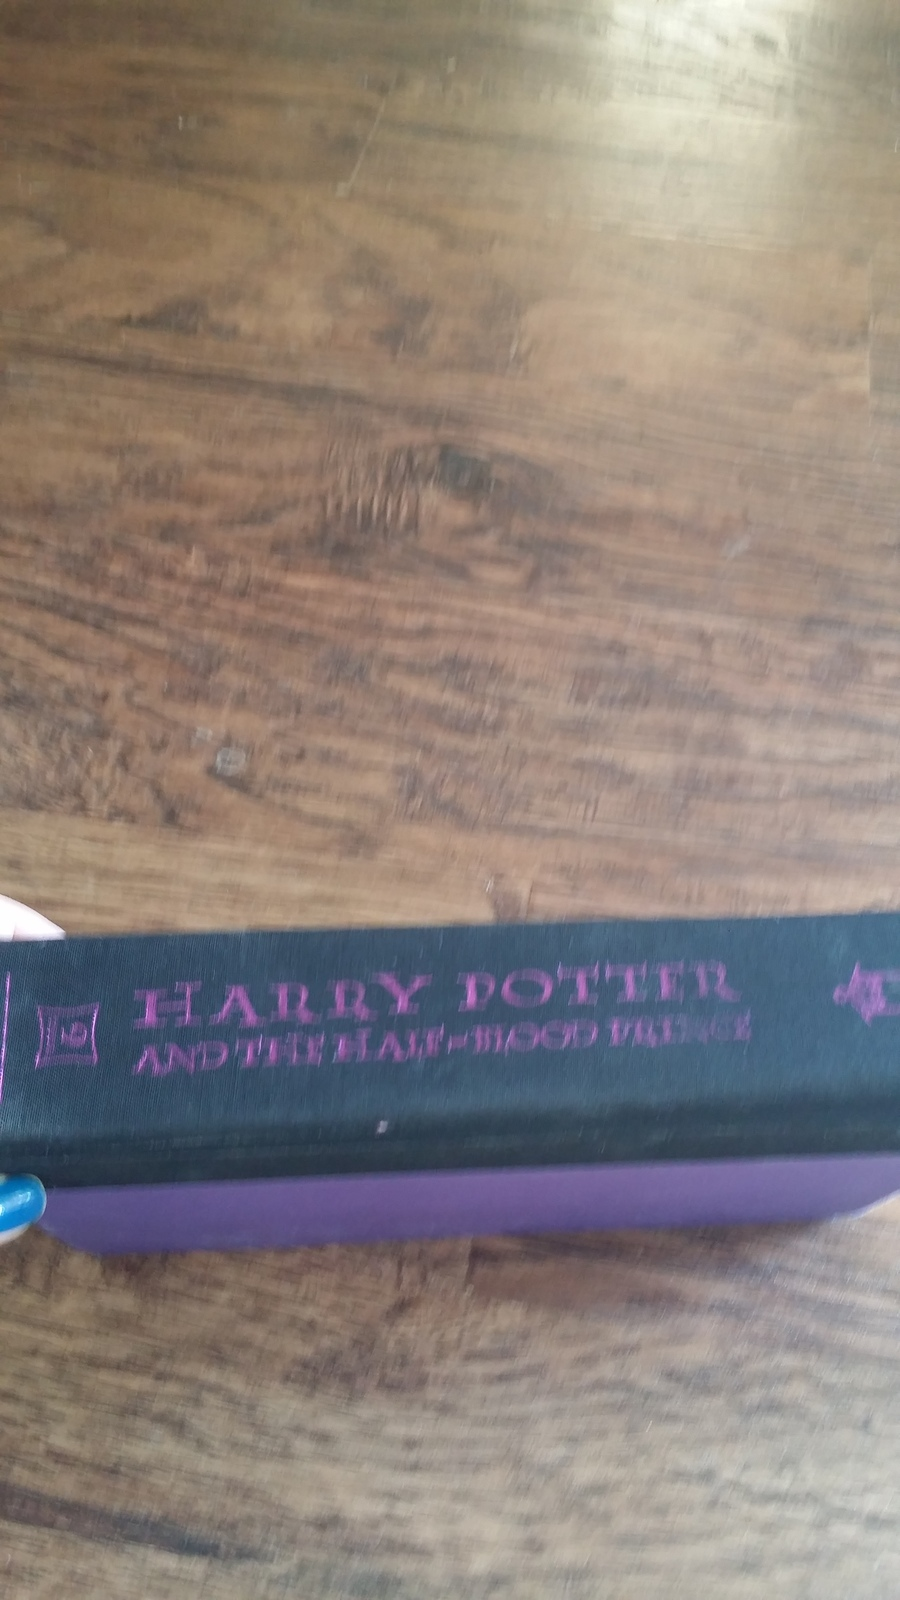 harry potter and the halfblood prince book 6 by jk